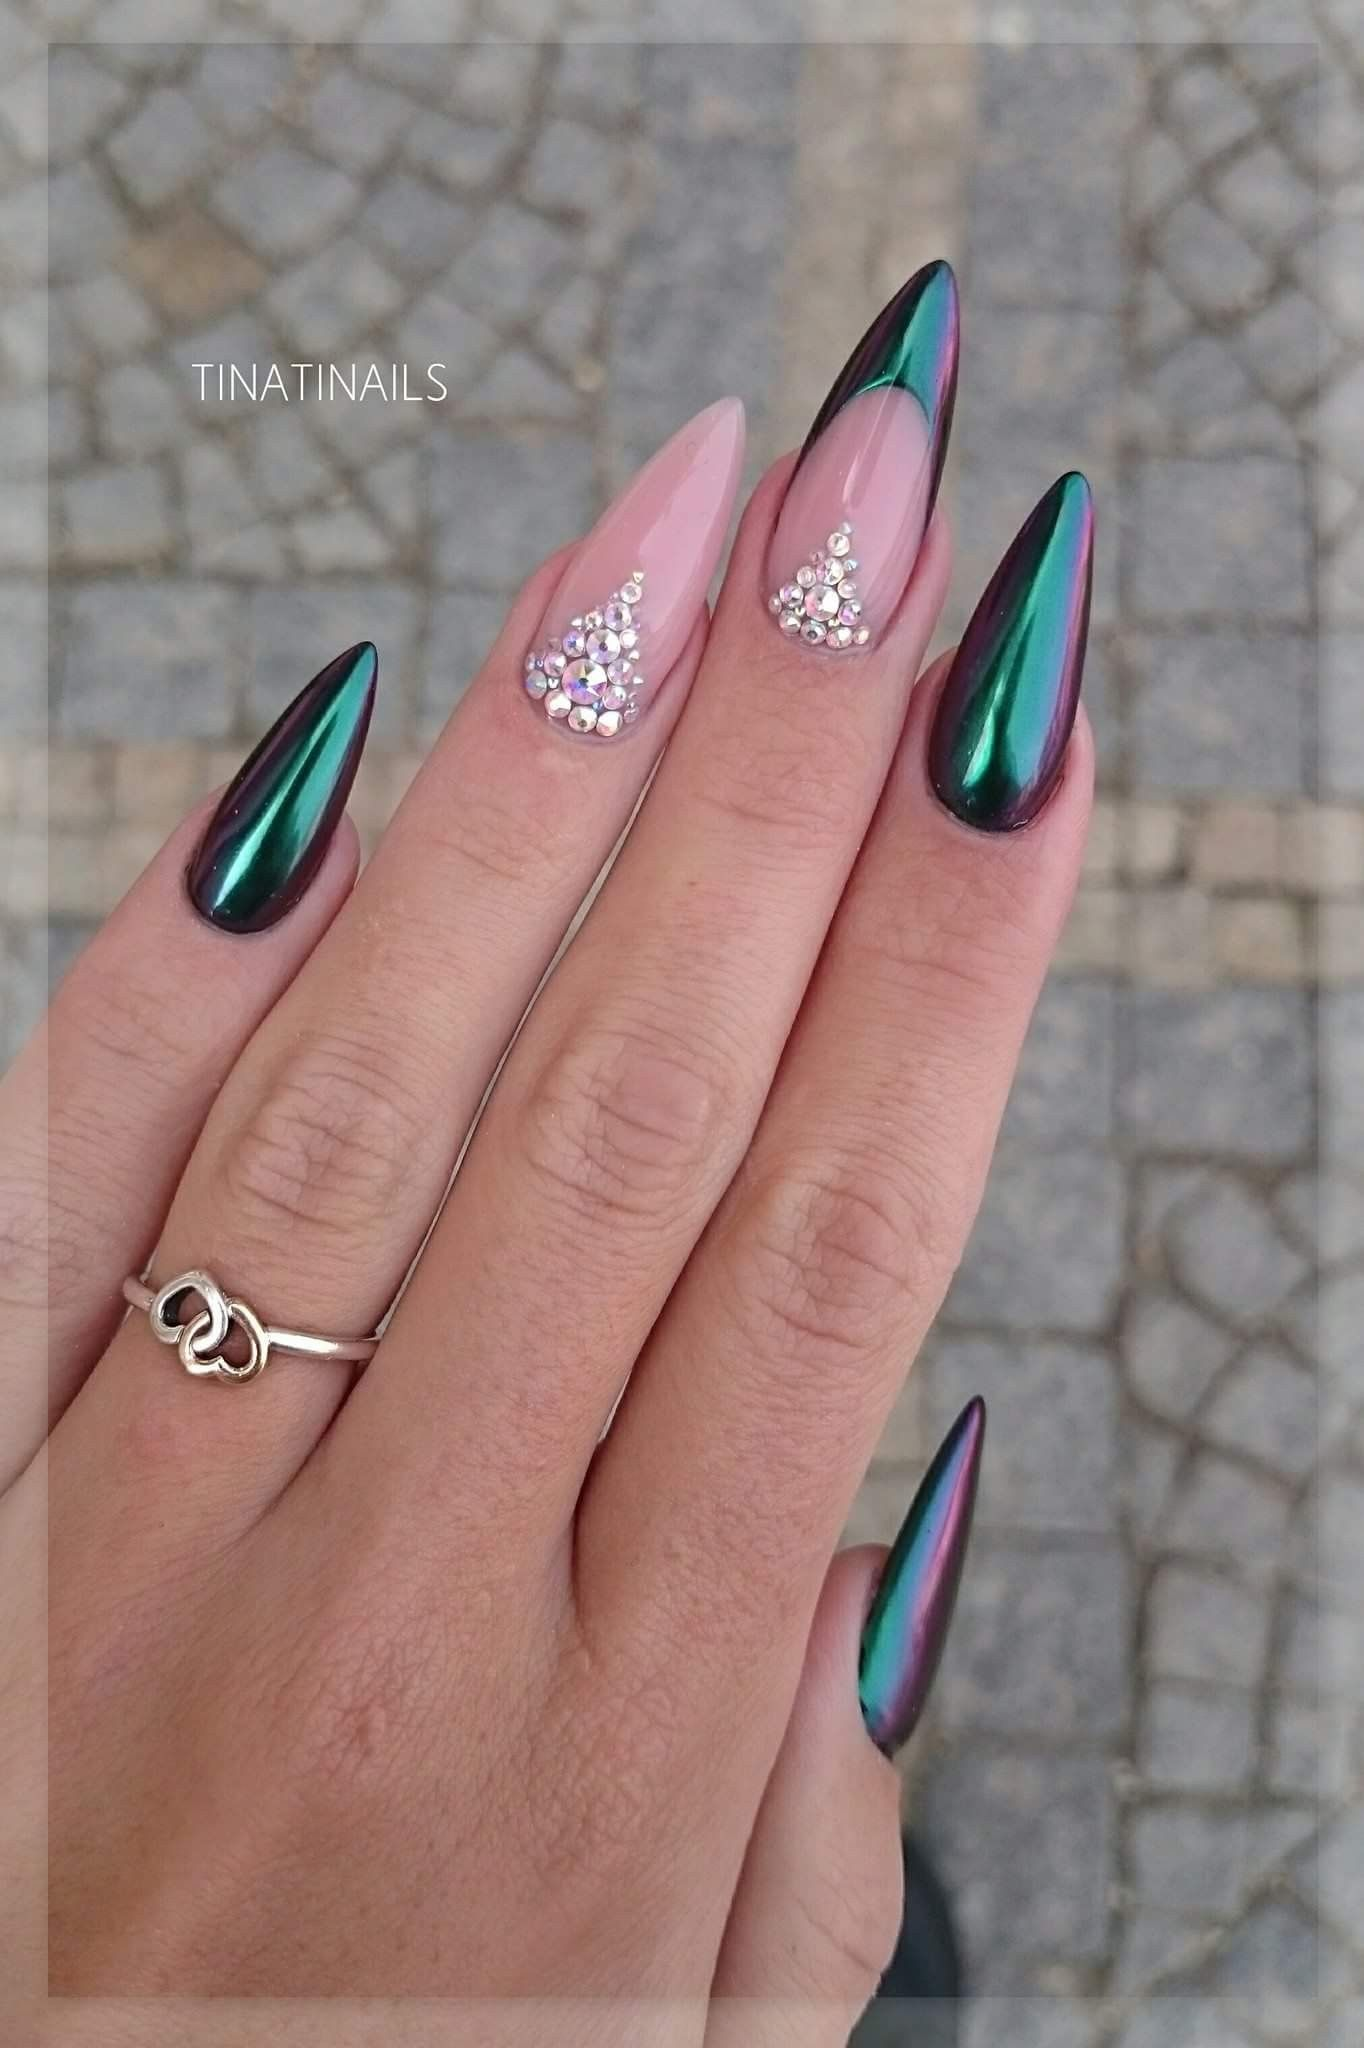 Powder pink nails pictures photos and images for facebook tumblr - Nails Green Oil Slick Manicure Nails Glitter Gems